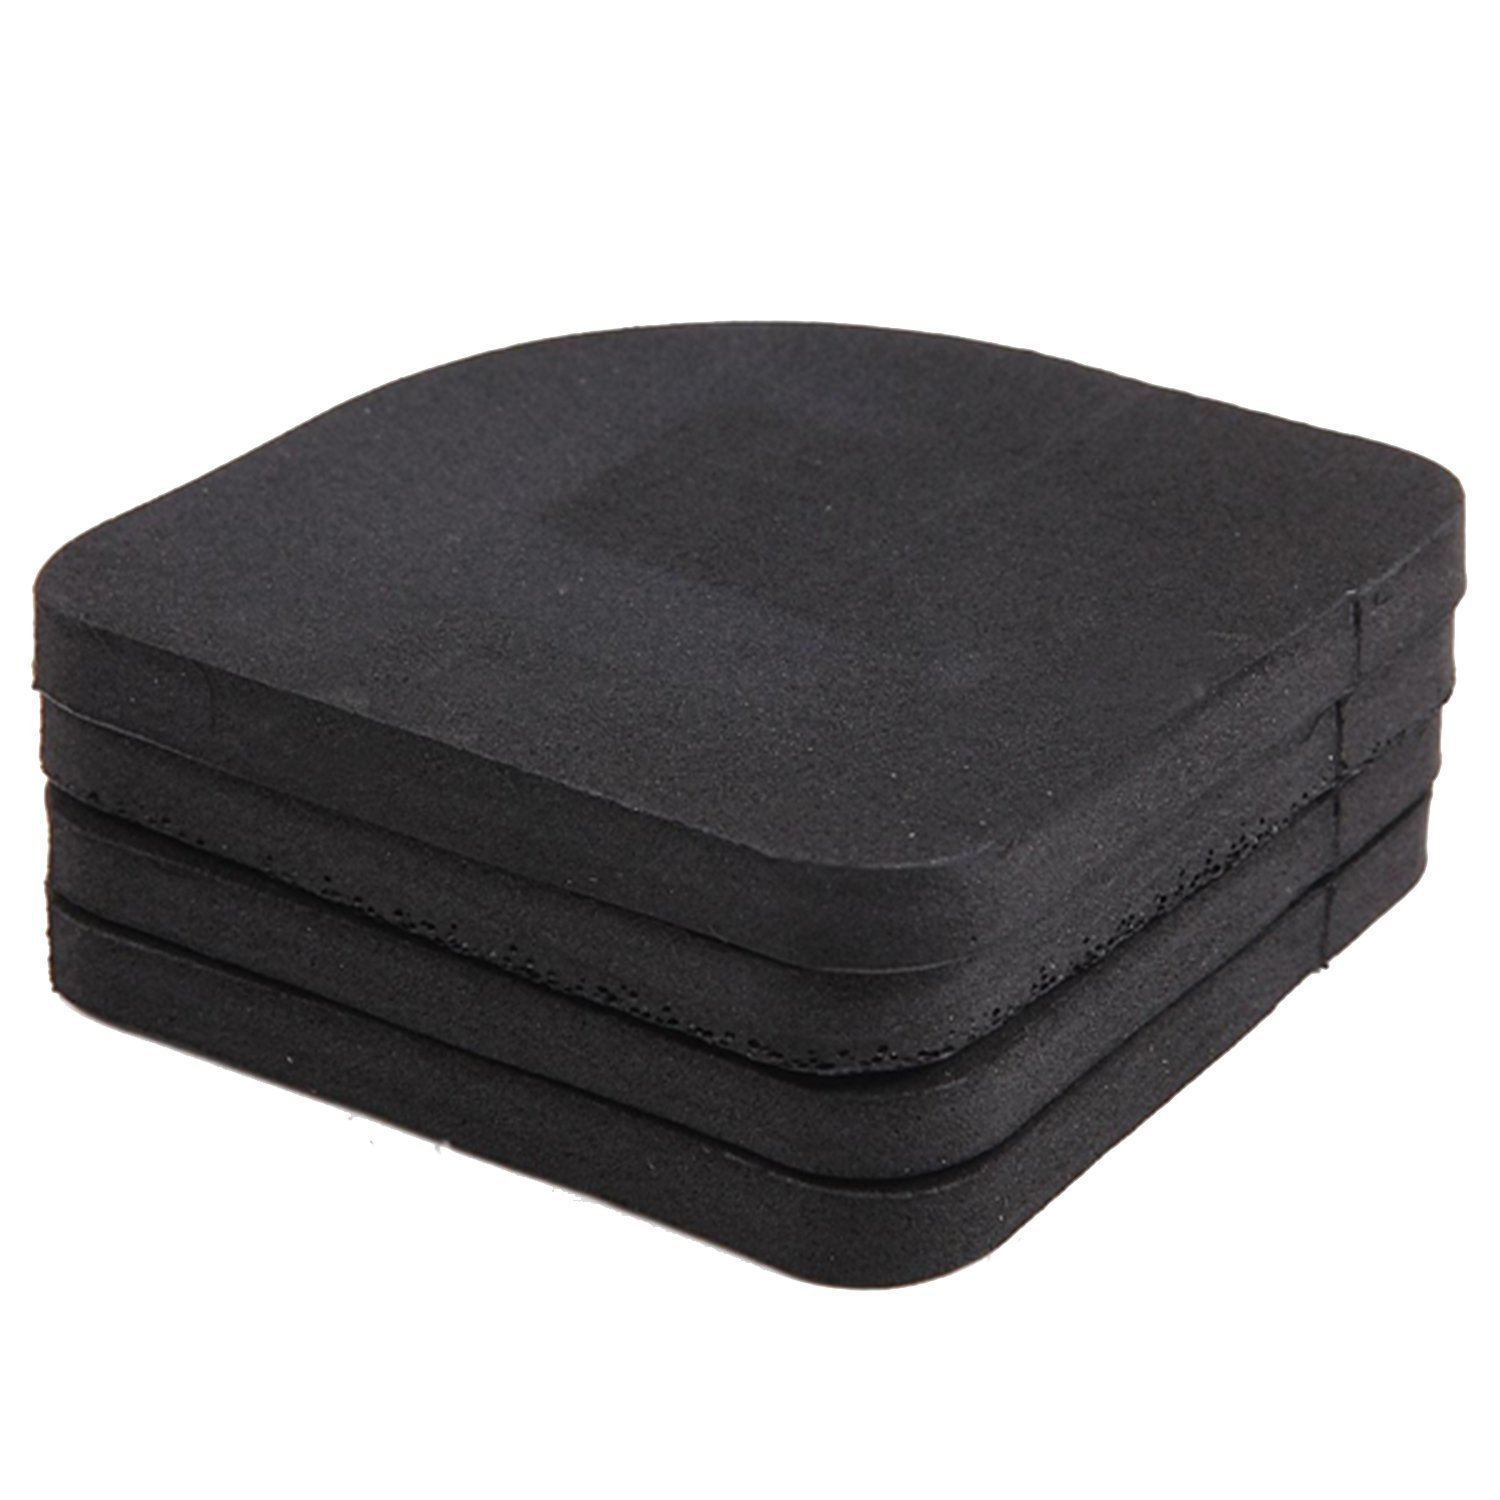 anti vibration pads washer dryer pads life changing products. Black Bedroom Furniture Sets. Home Design Ideas